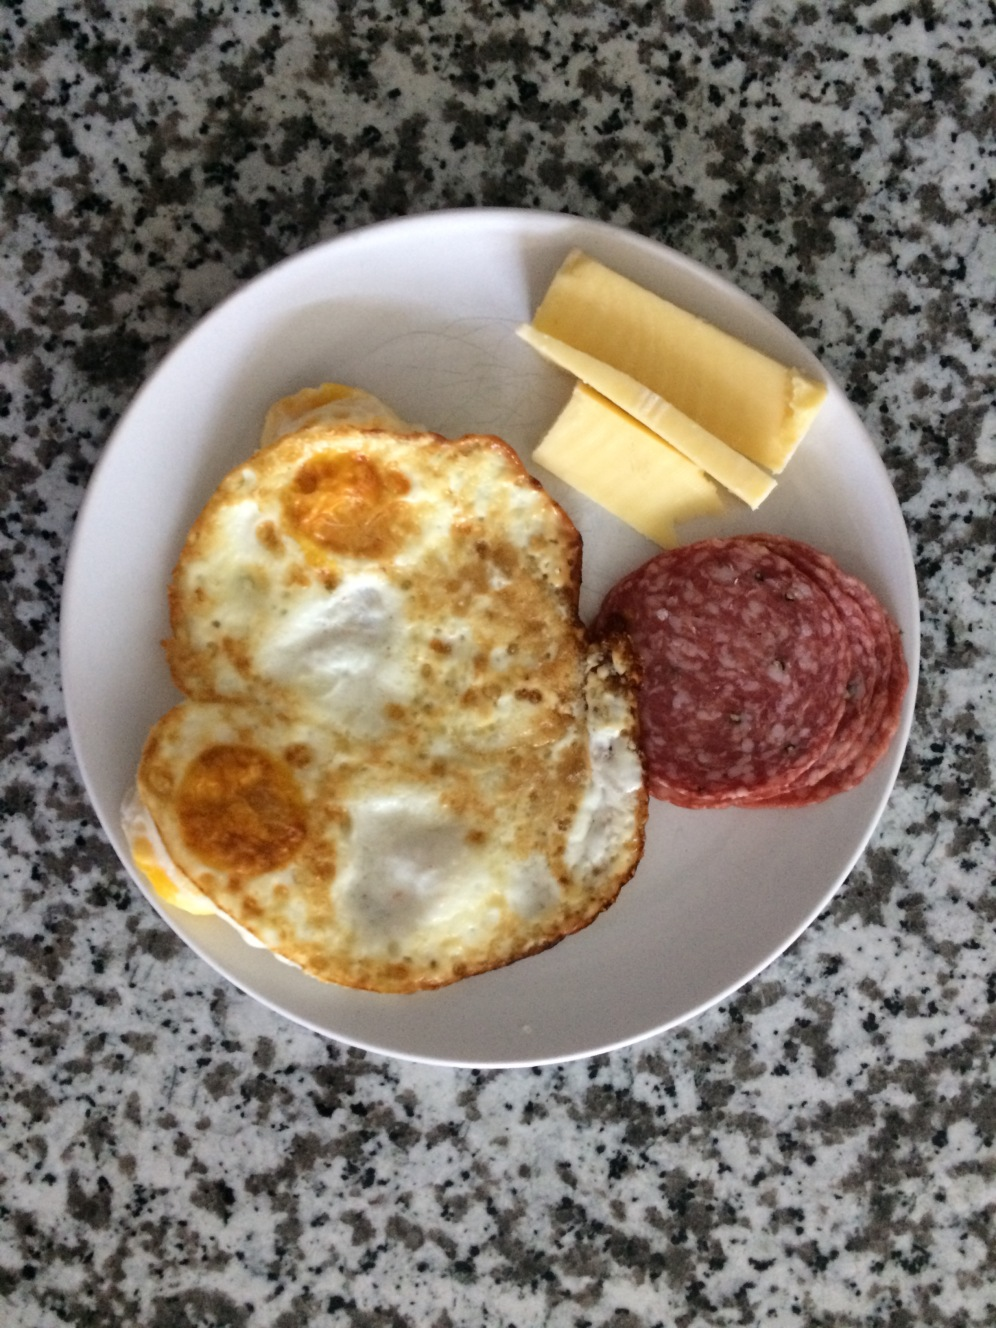 2 eggs over easy cooked in coconut oil, Italian salami, and grass-fed cheese